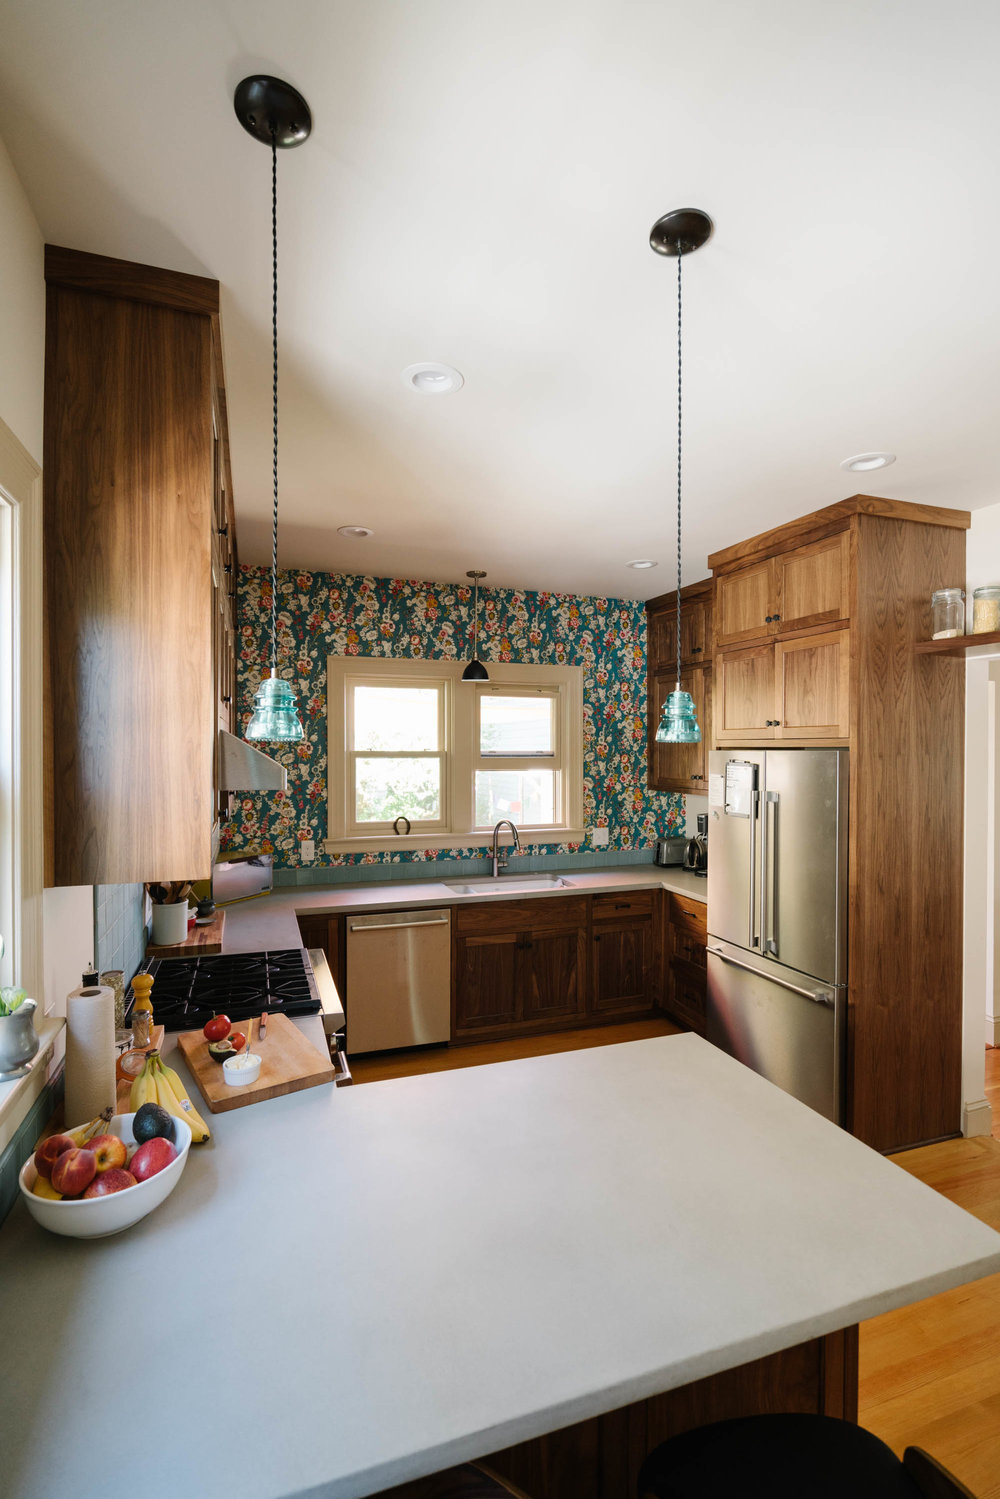 Inset cabinetry is in keeping with the style of the home, while solid walnut doors and natural concrete counters keep it feeling modern.